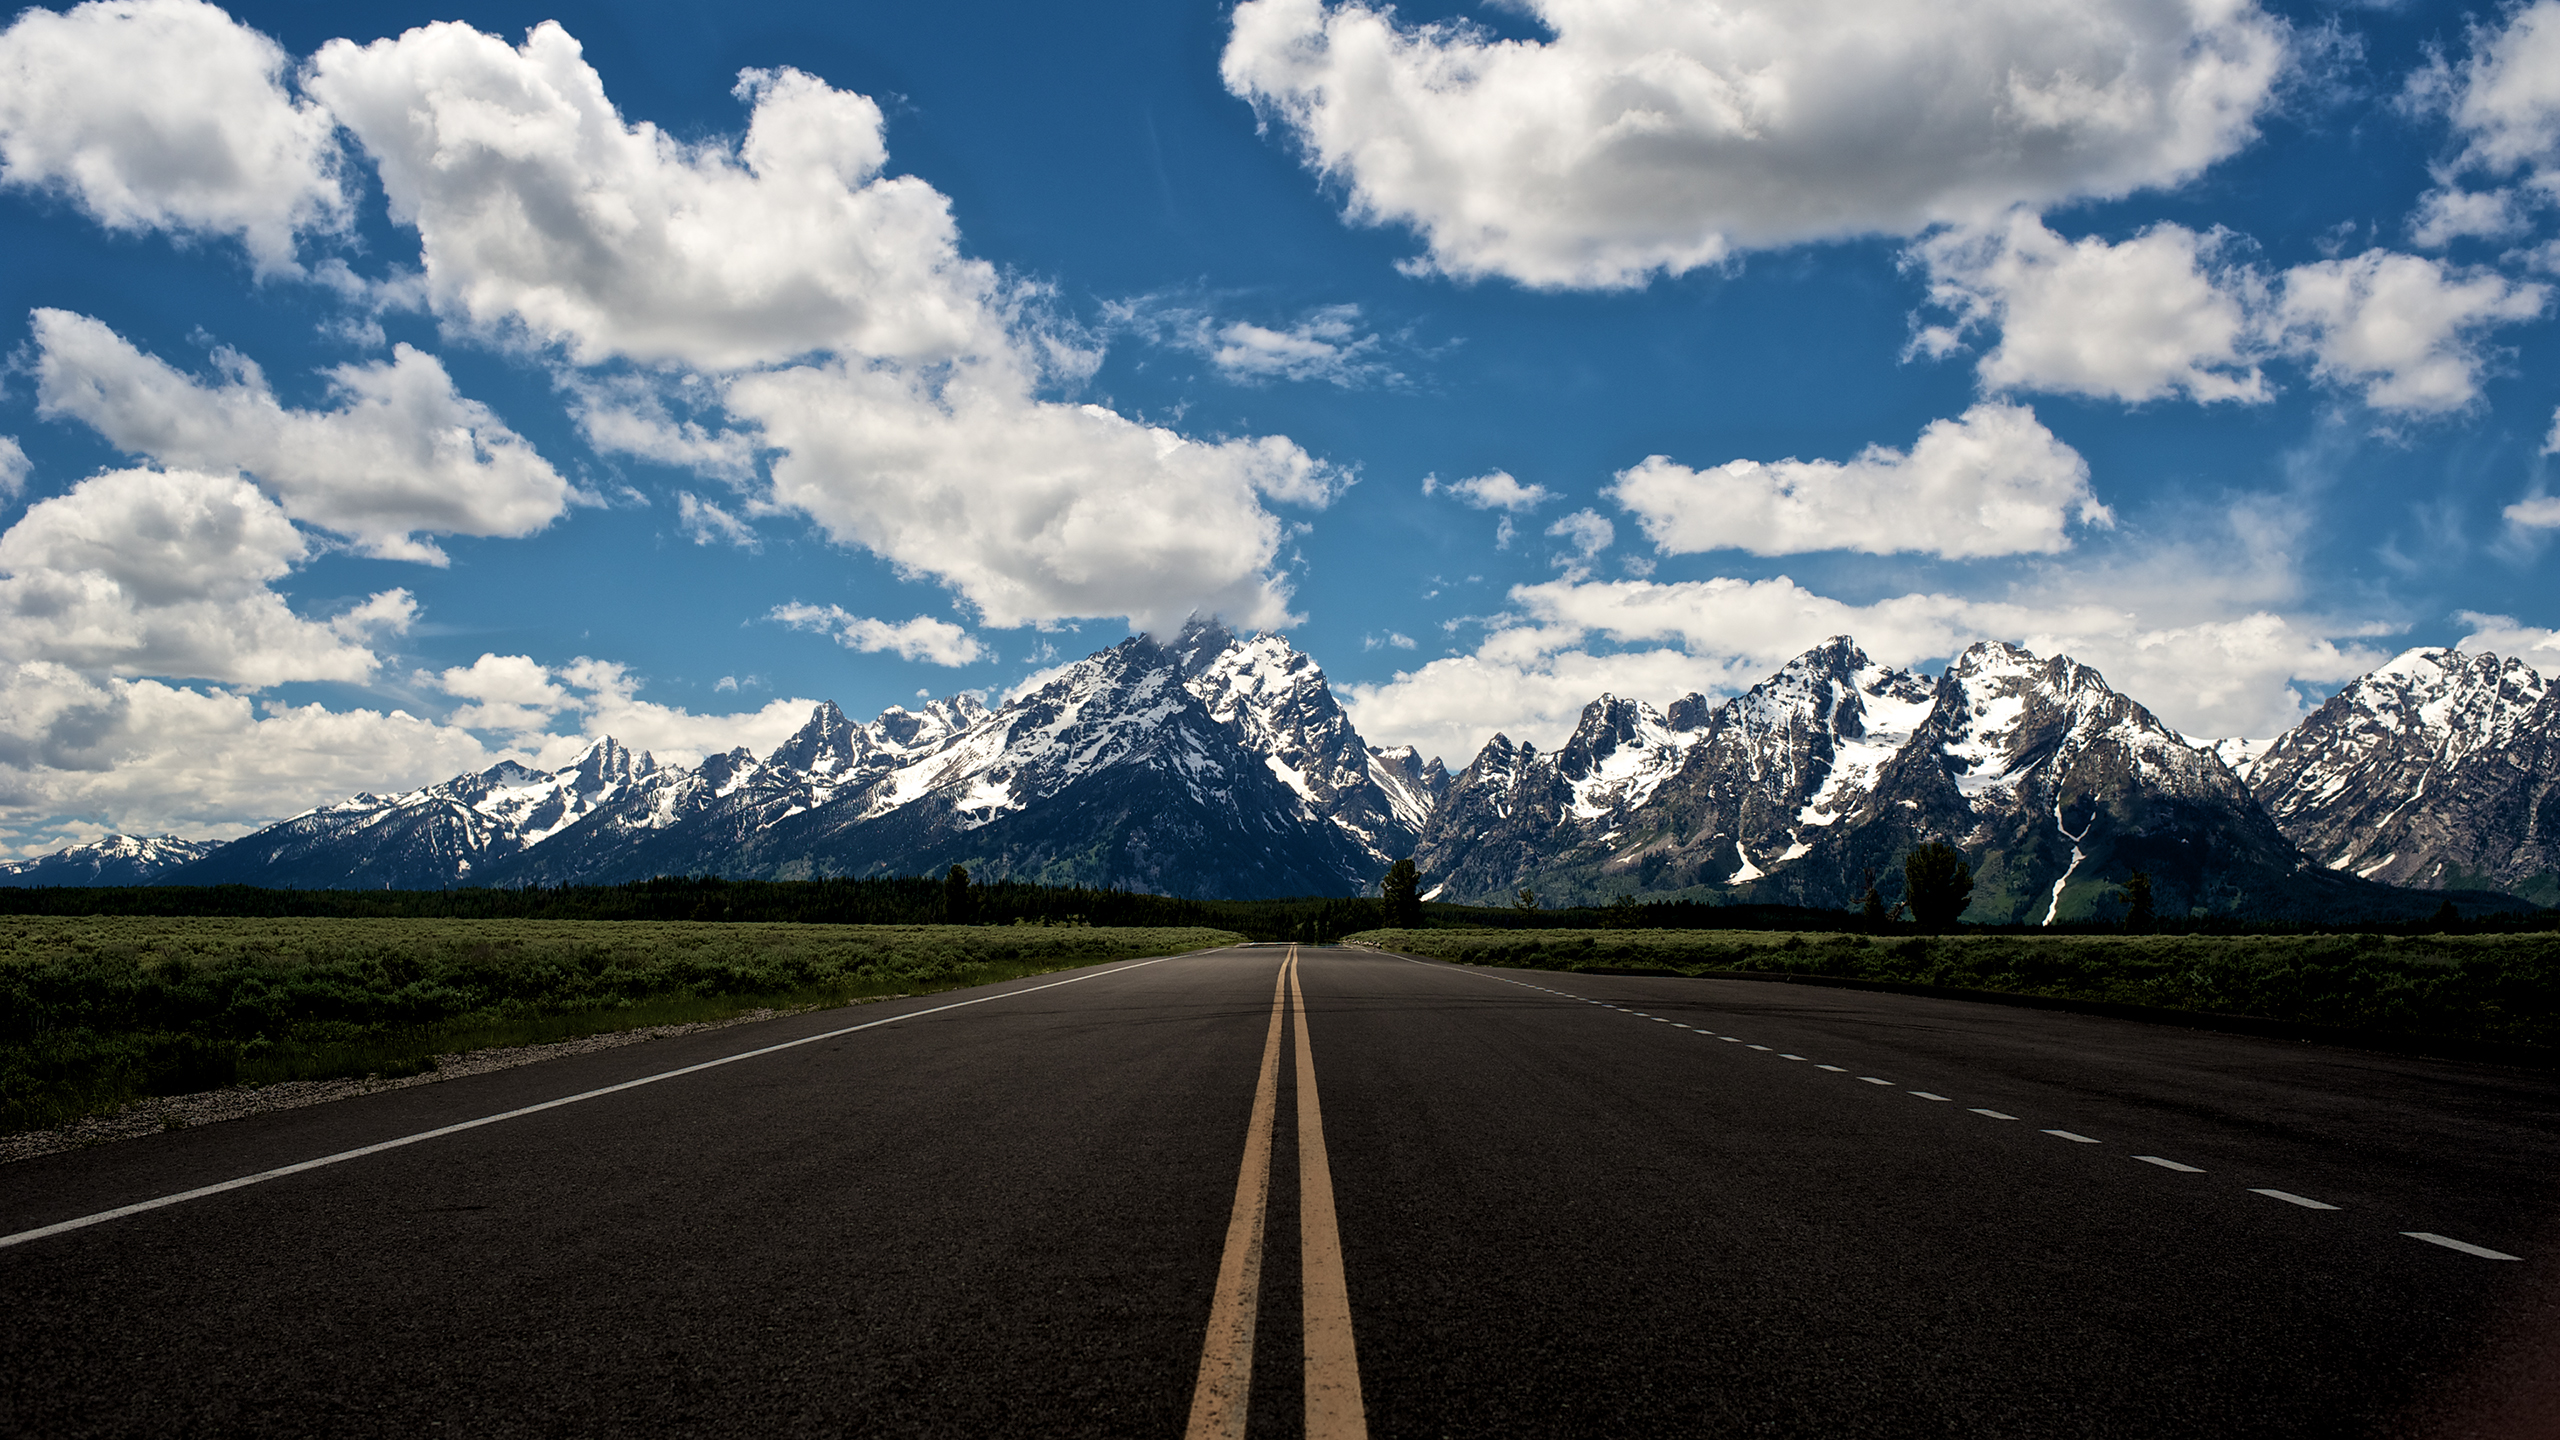 road_to_sky_wallpaper_2560x1440